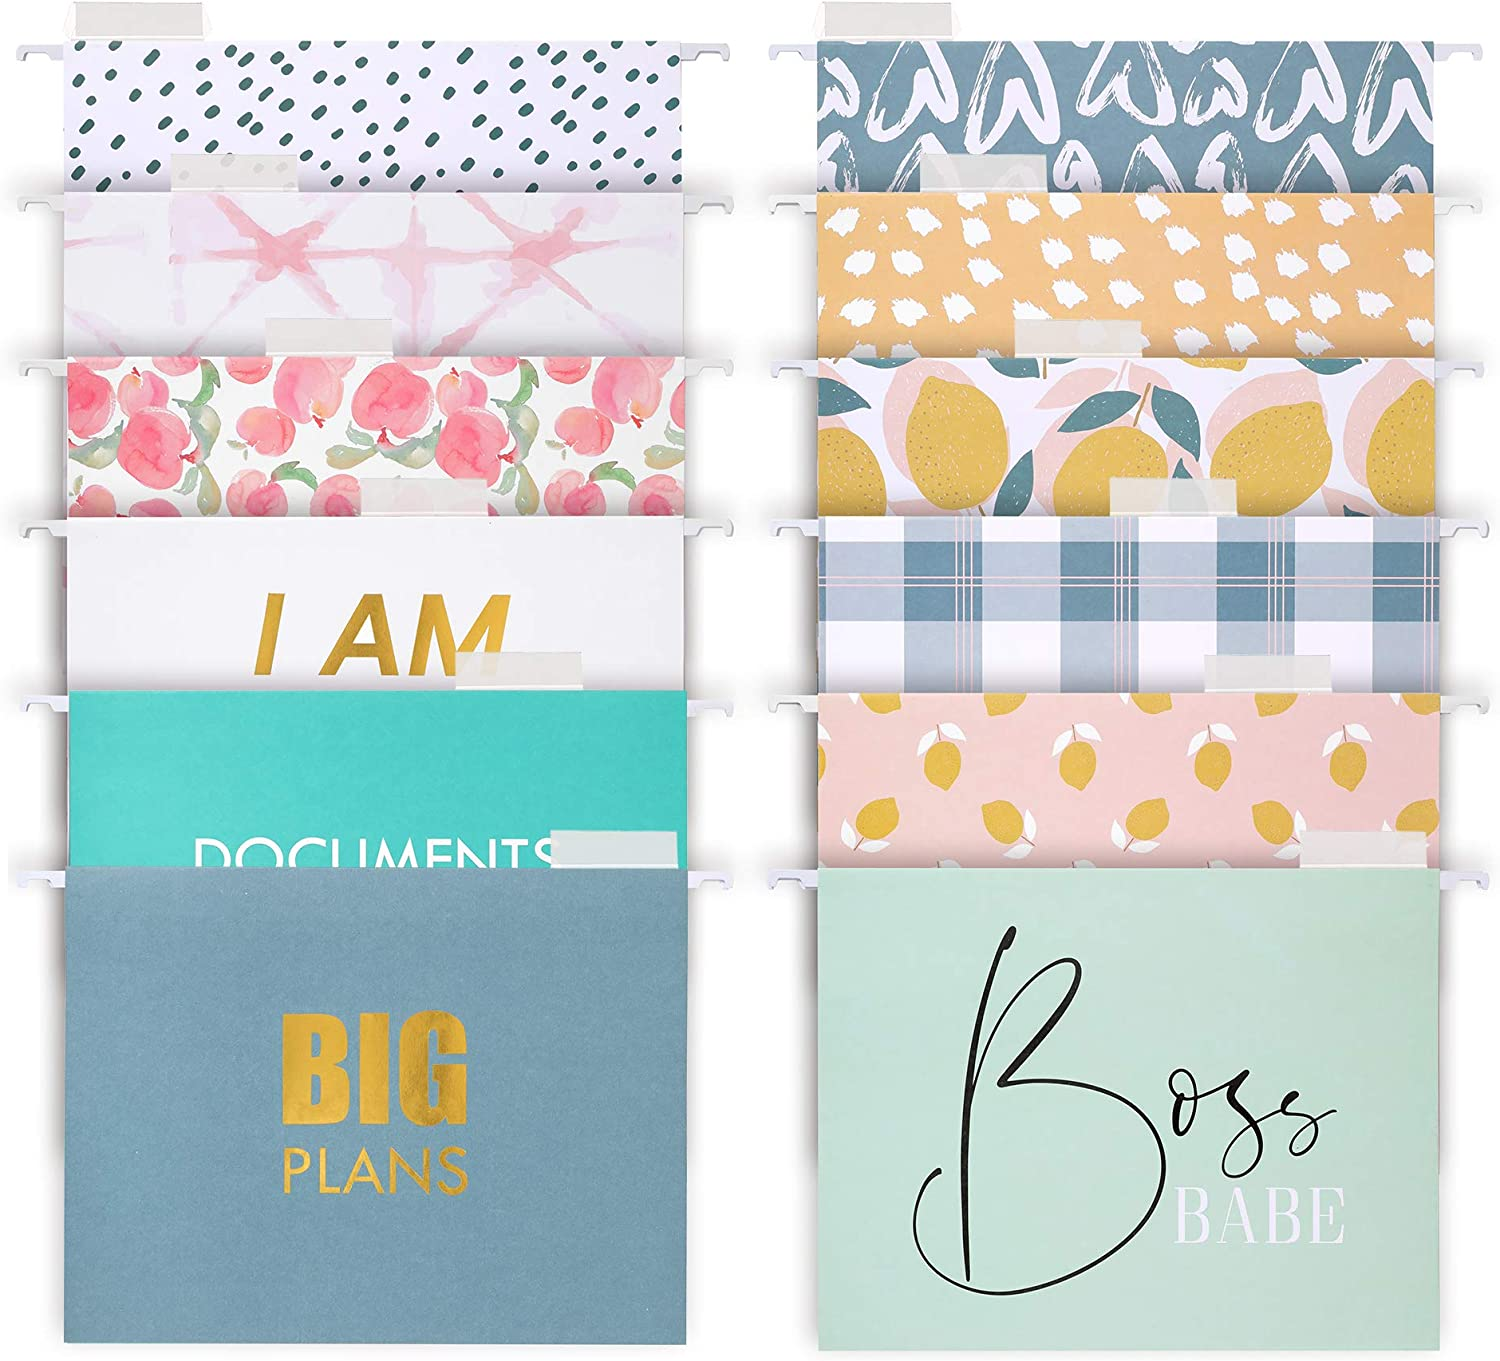 Decorative Hanging File Folders - 5 Letter Size Reinforced Colored Hang  Folders, 5/5-Cut Adjustable Tabs - Cute Designs and Gold foil Font, Office